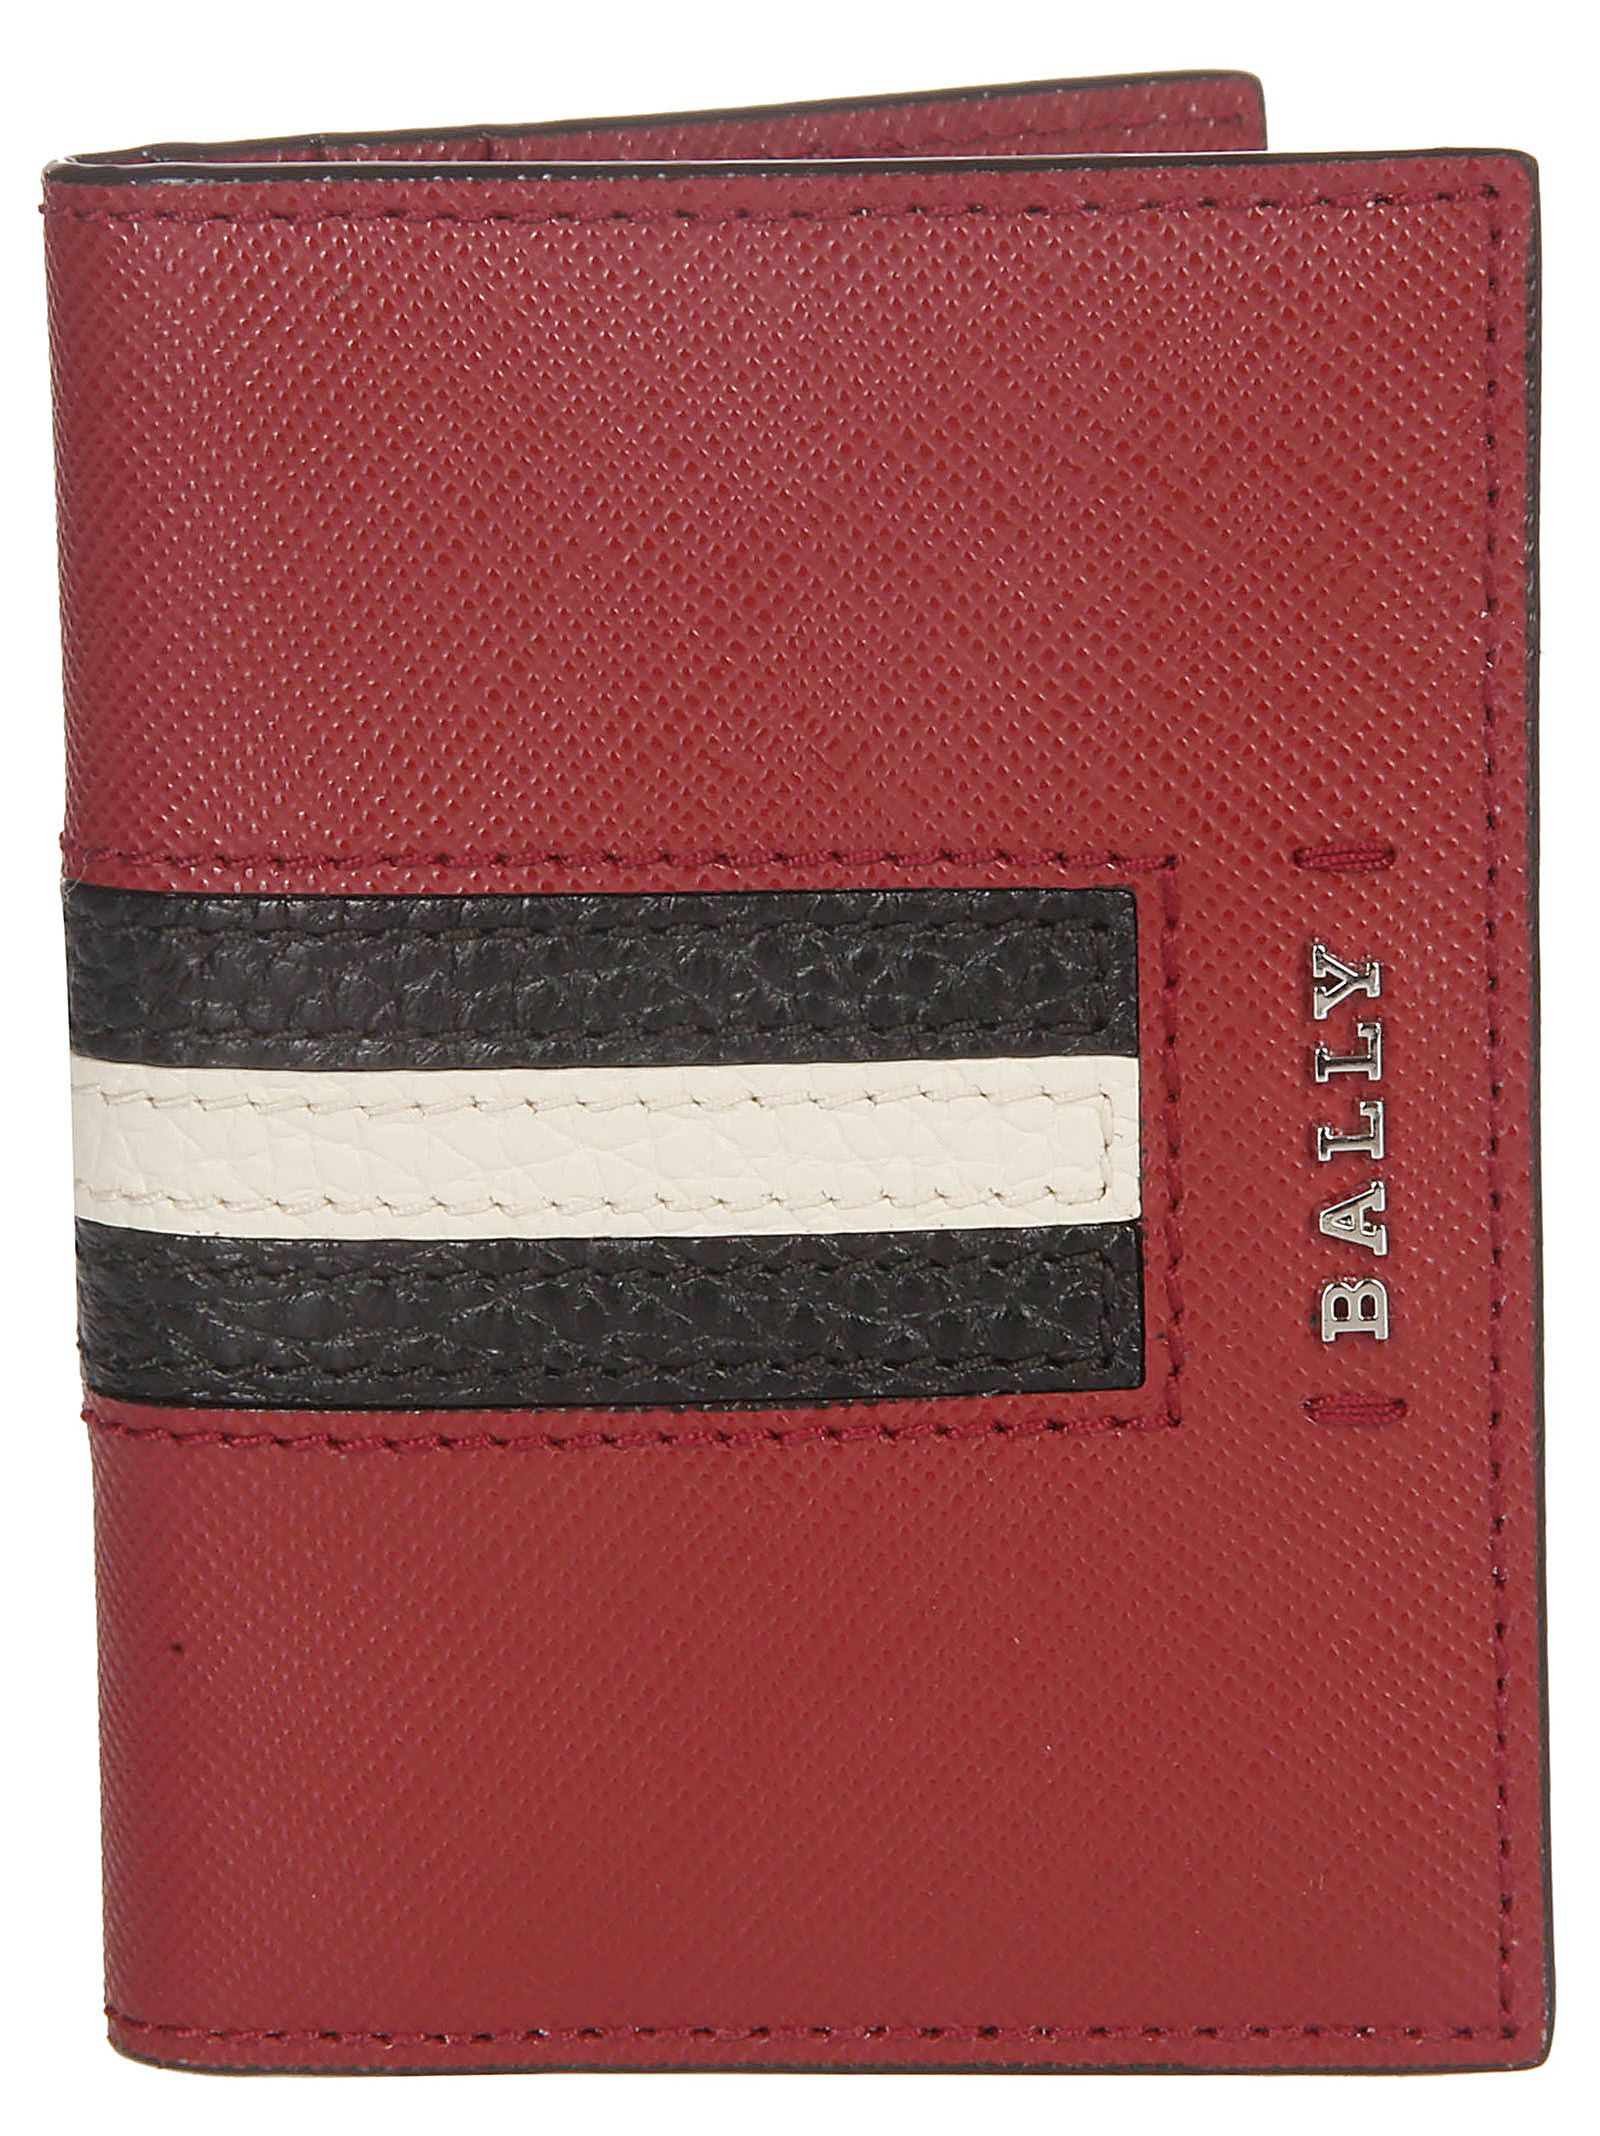 Bally Salder Logo Wallet